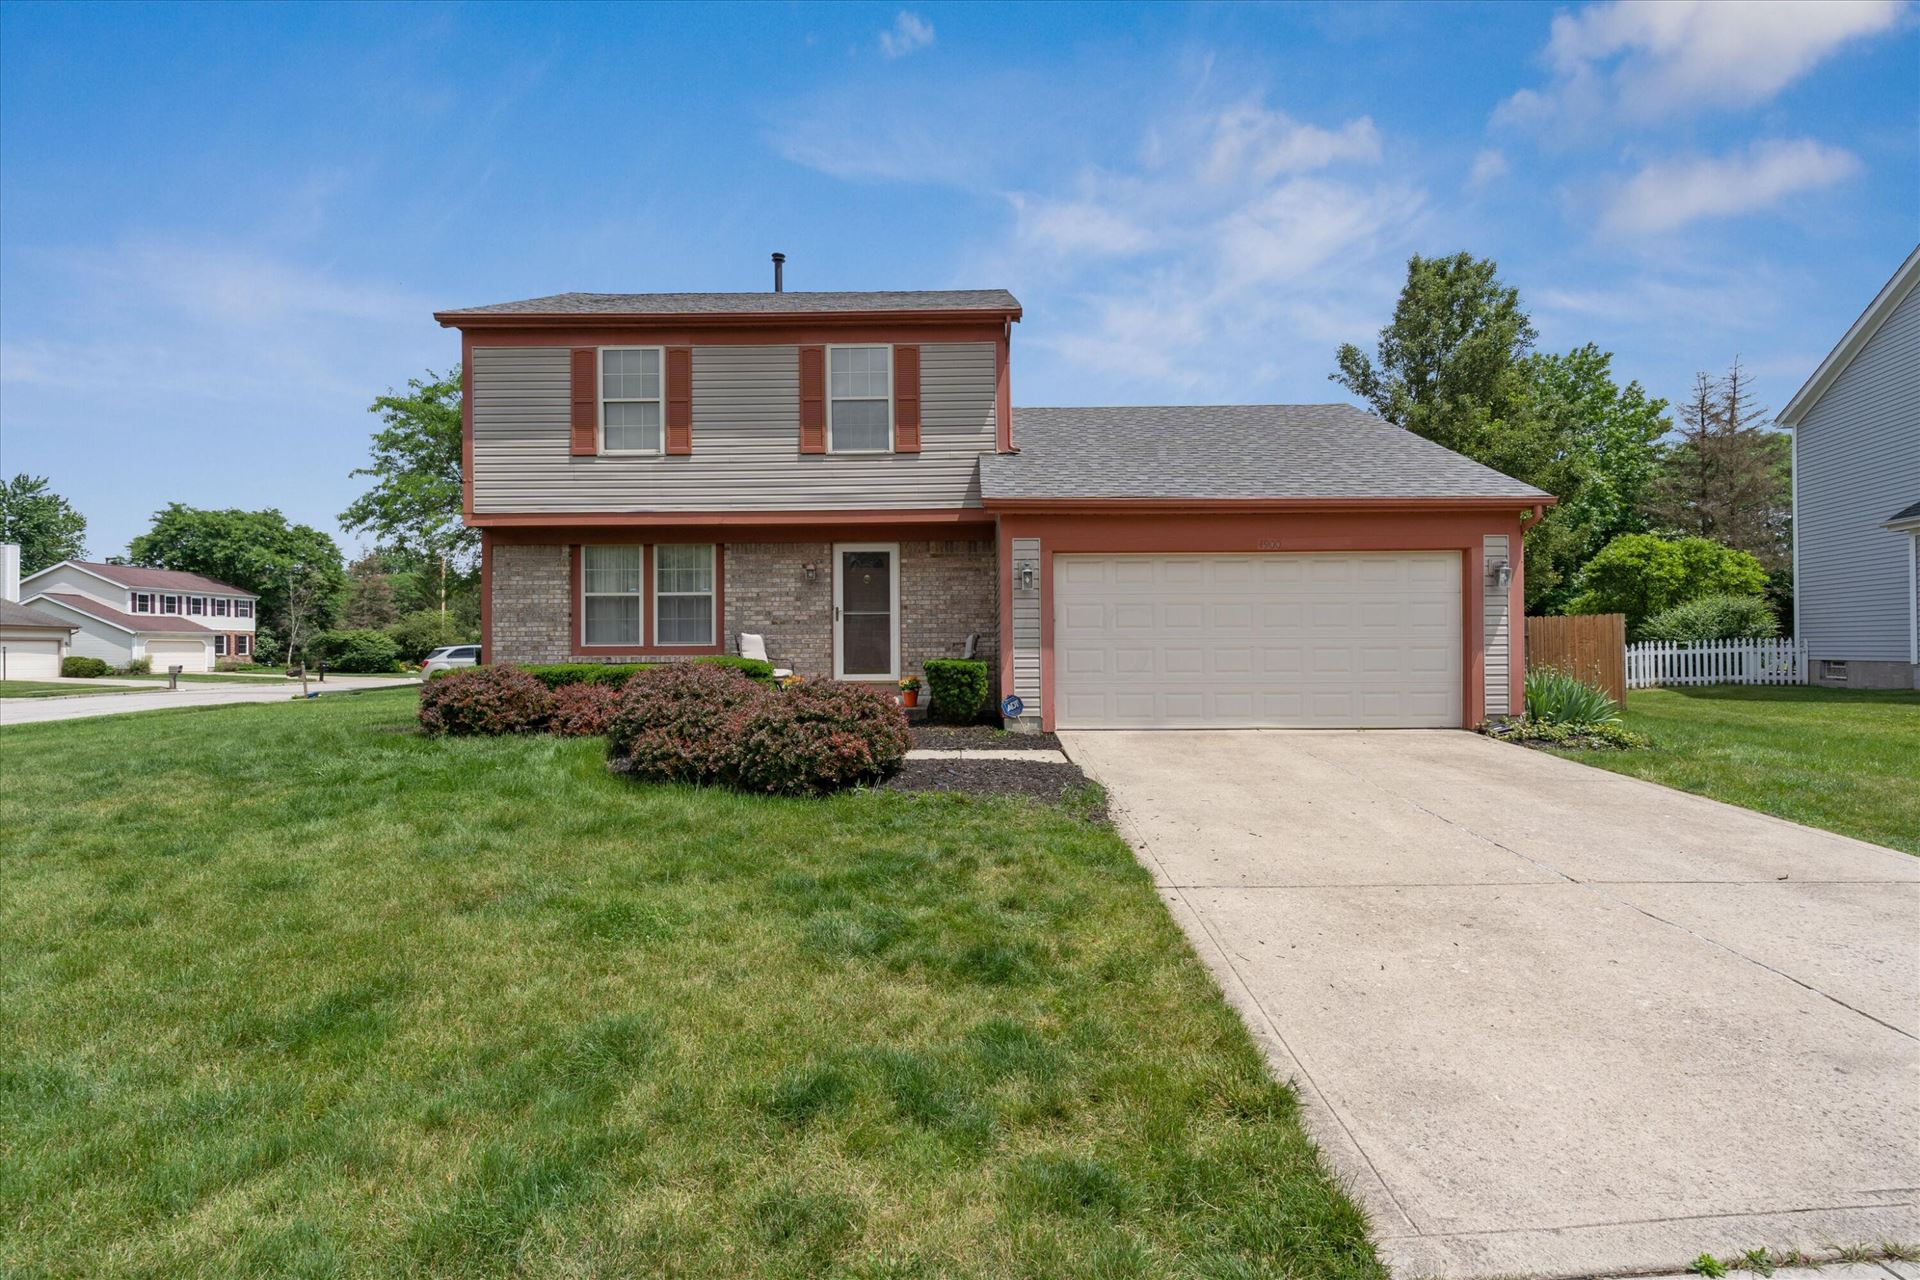 Photo for 4900 Richland Drive, Columbus, OH 43230 (MLS # 221020868)